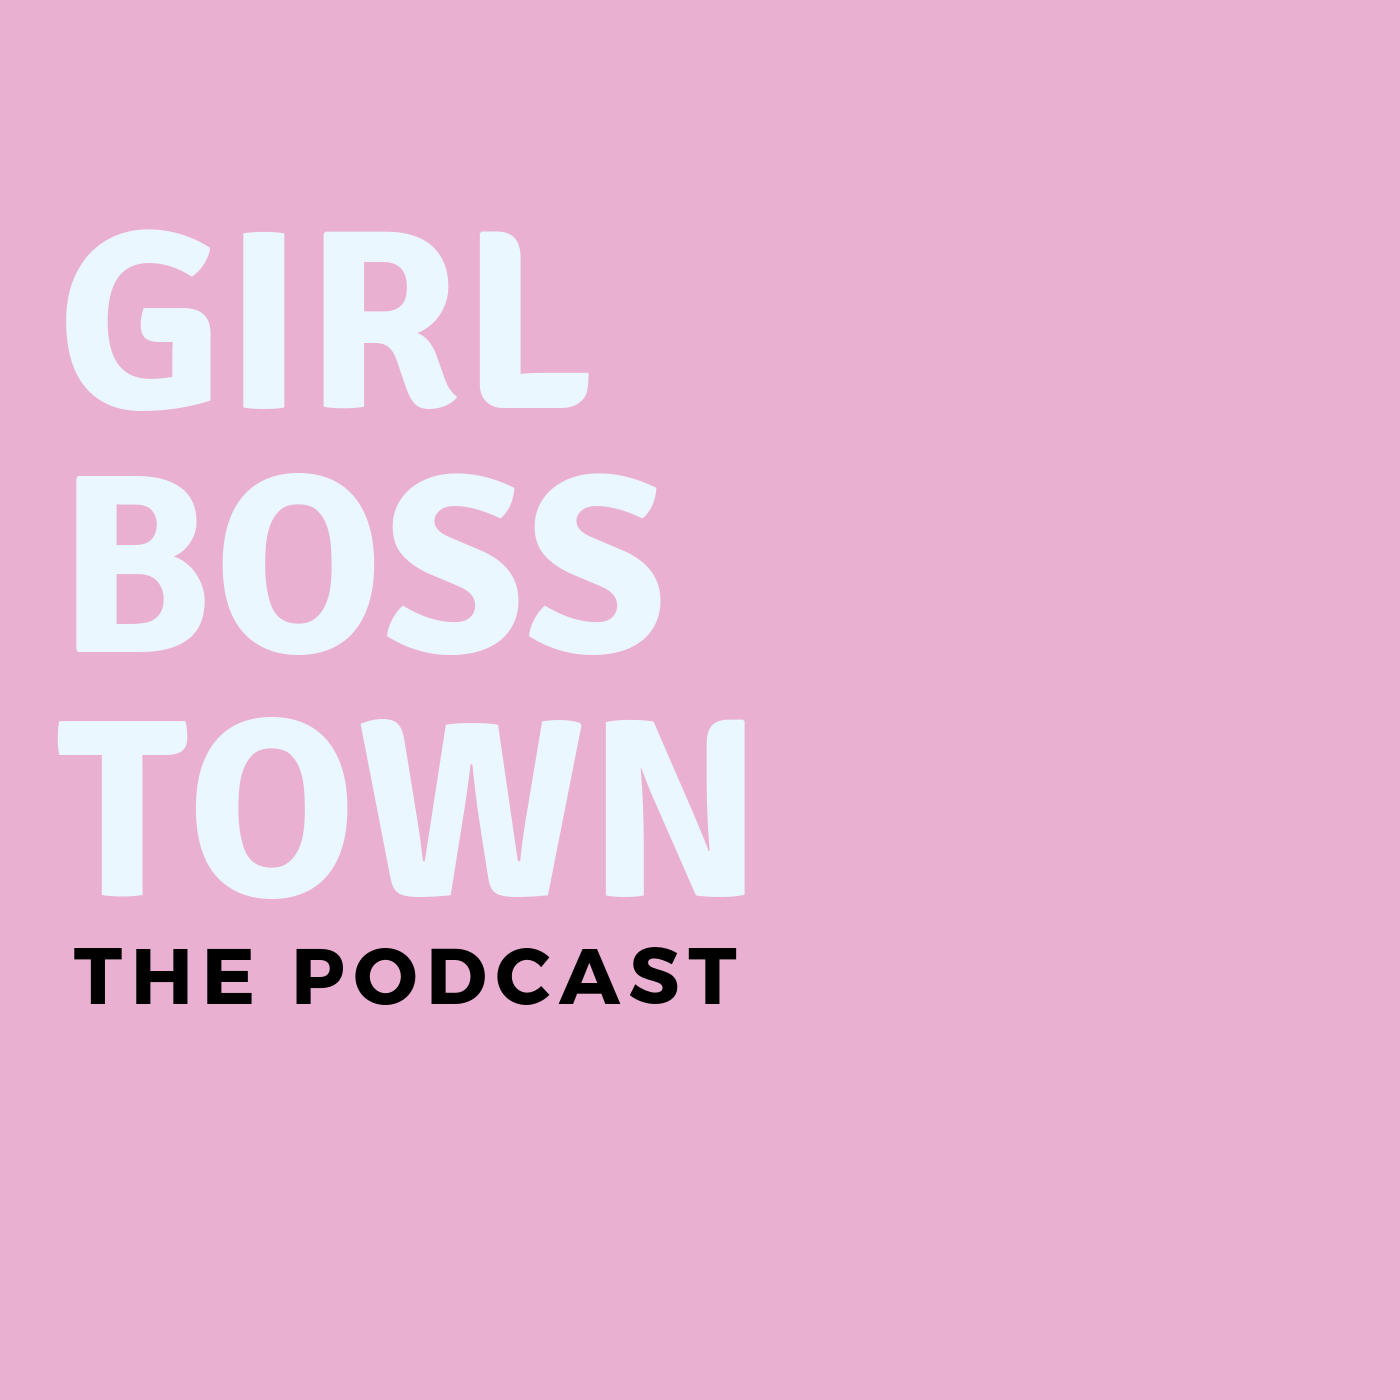 girlbosstown's podcast show image